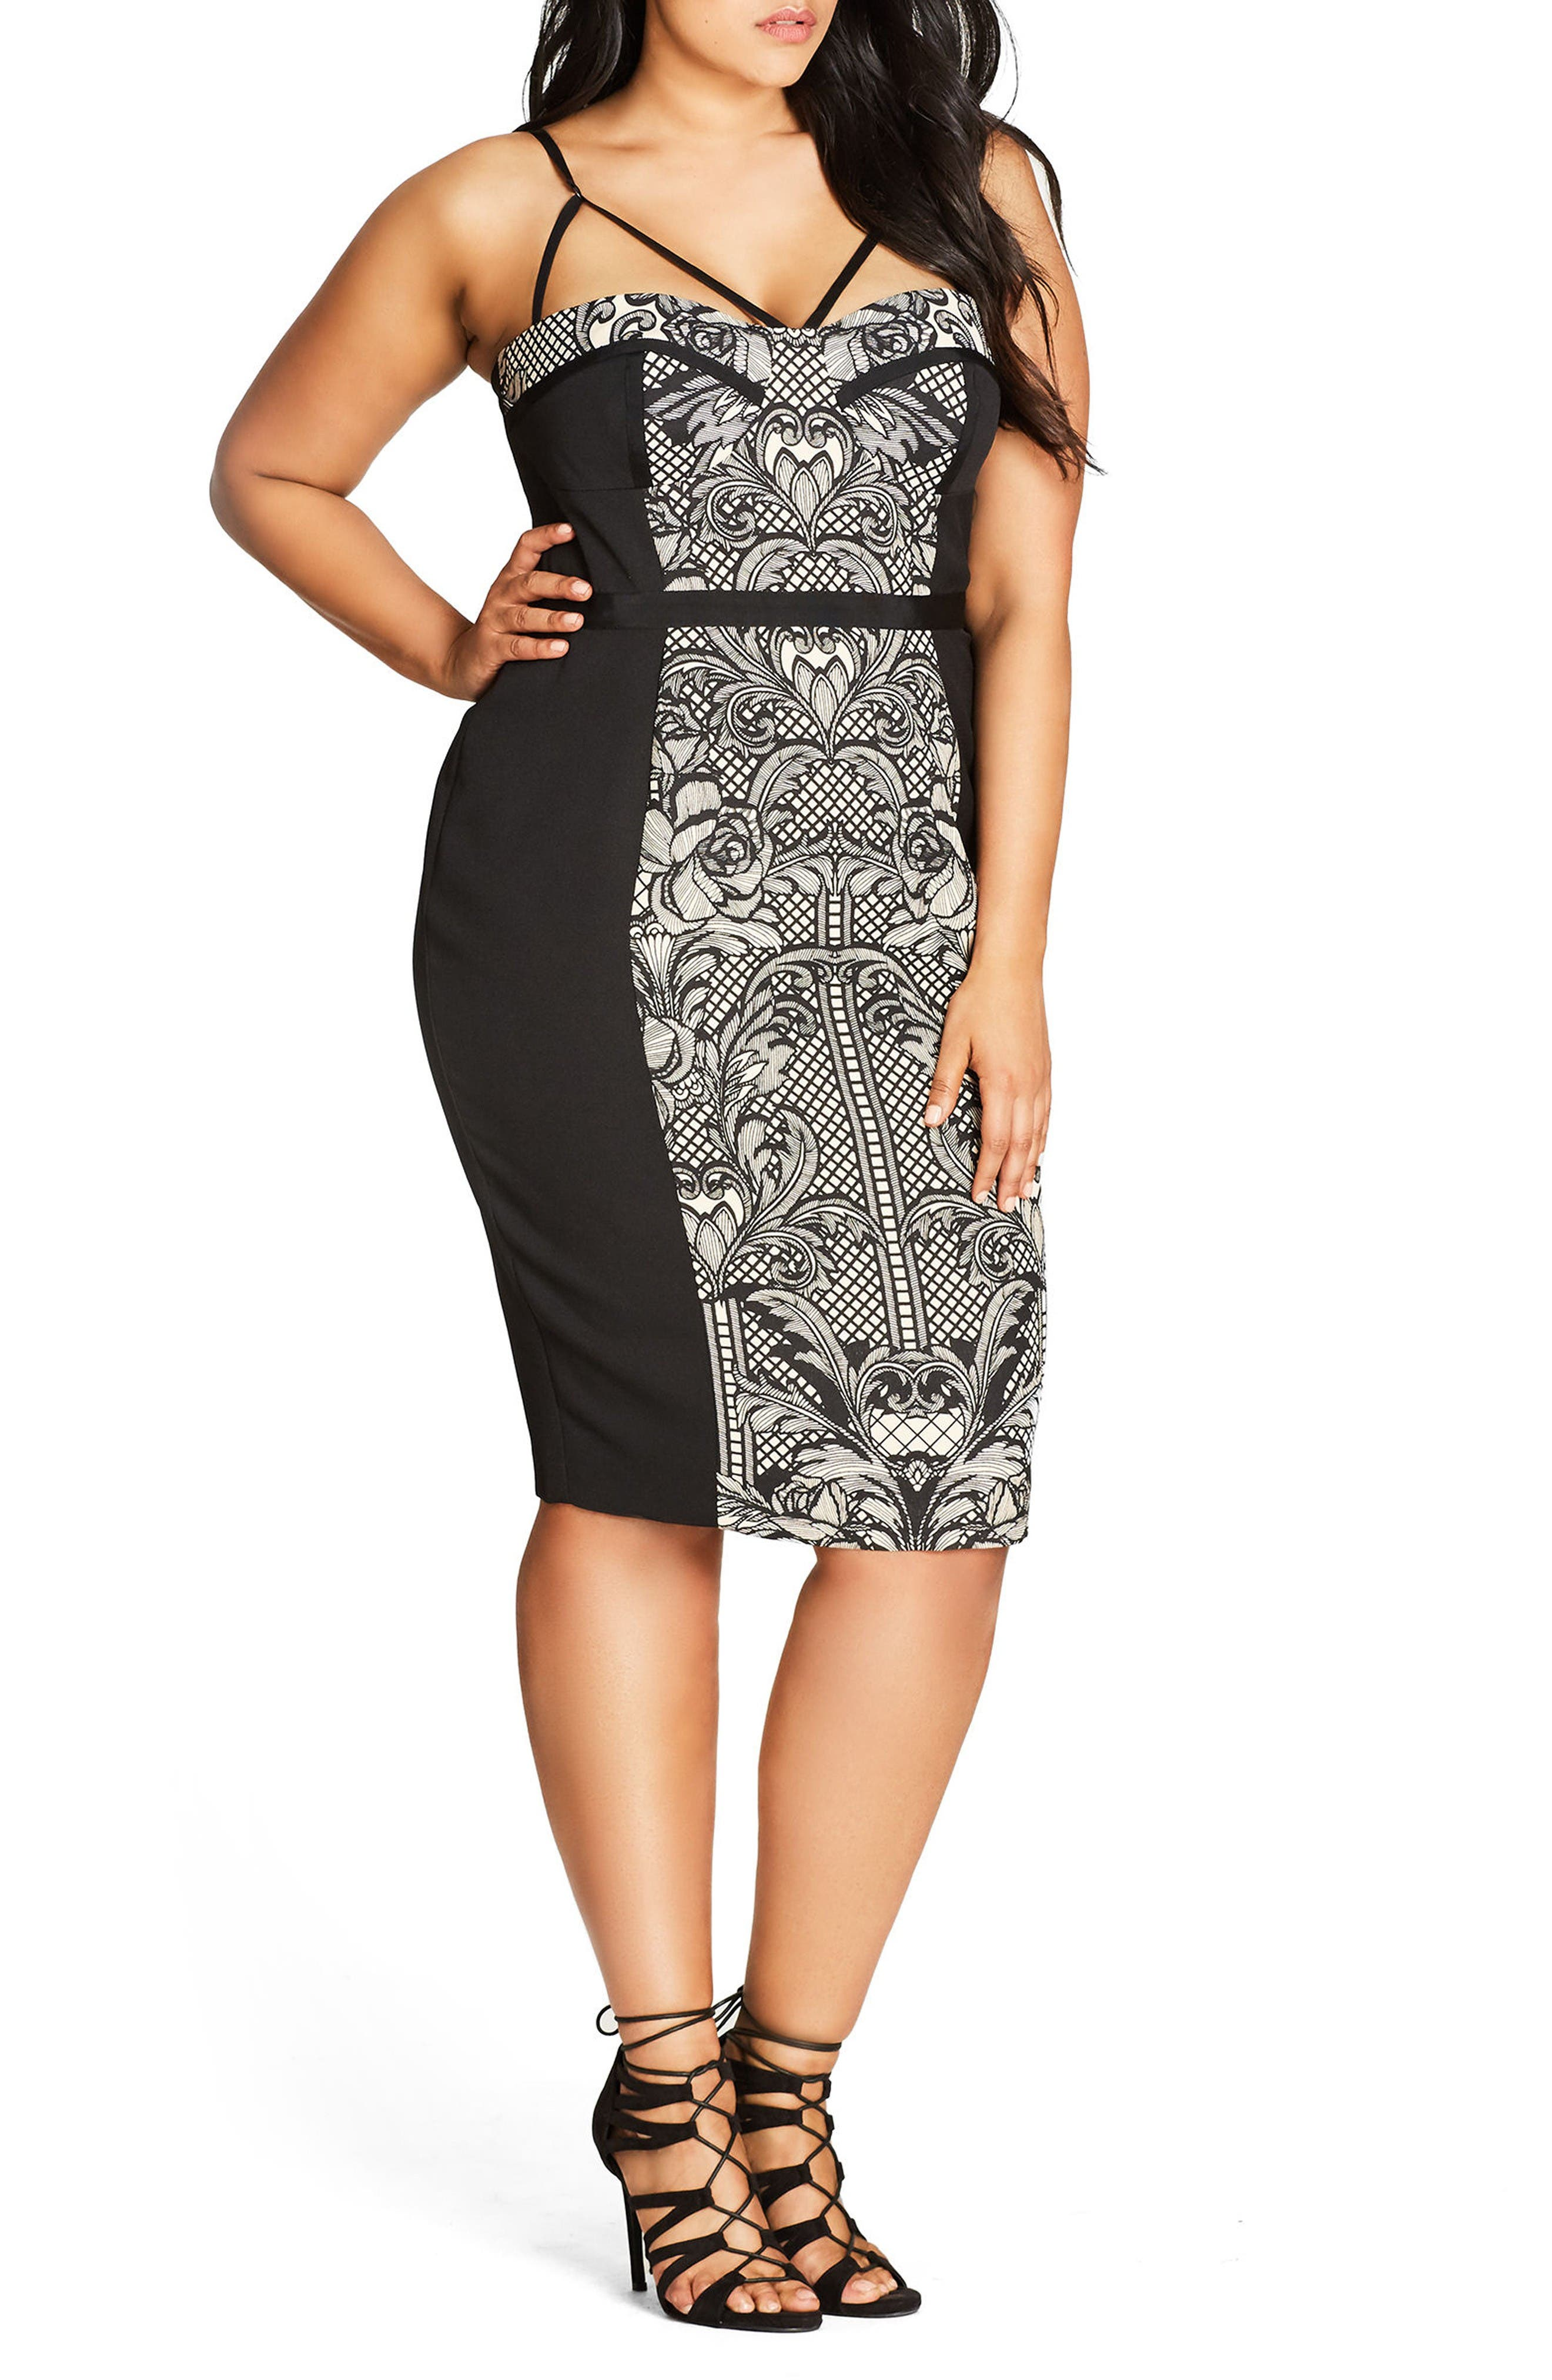 CITY CHIC Seductive Strappy Block Print Sheath Dress